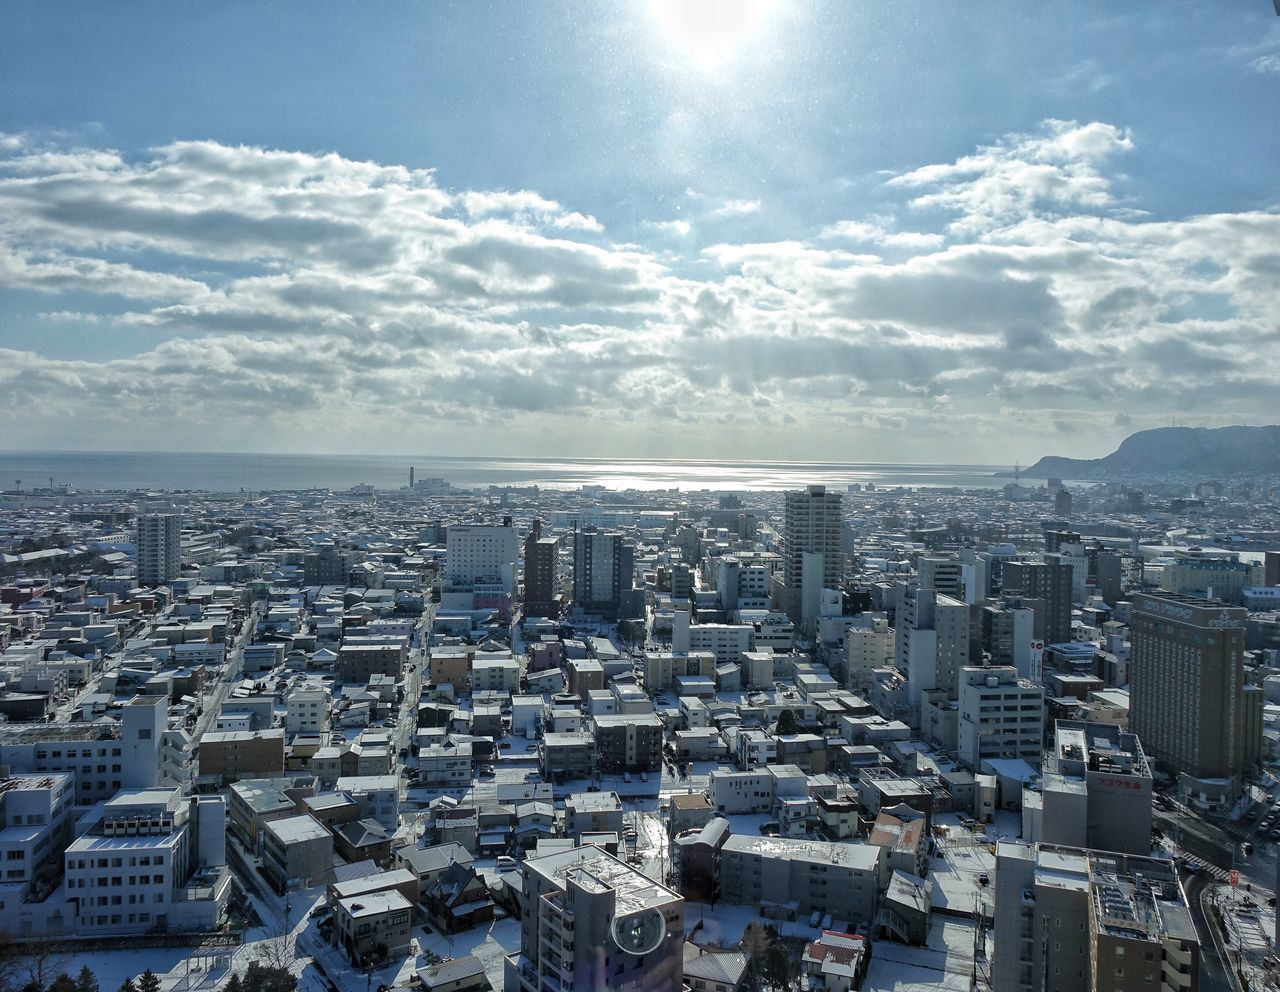 City Cityscape Architecture Sky Sunlight City Life Residential Building Urban Skyline Outdoors Cloud - Sky Hakodate